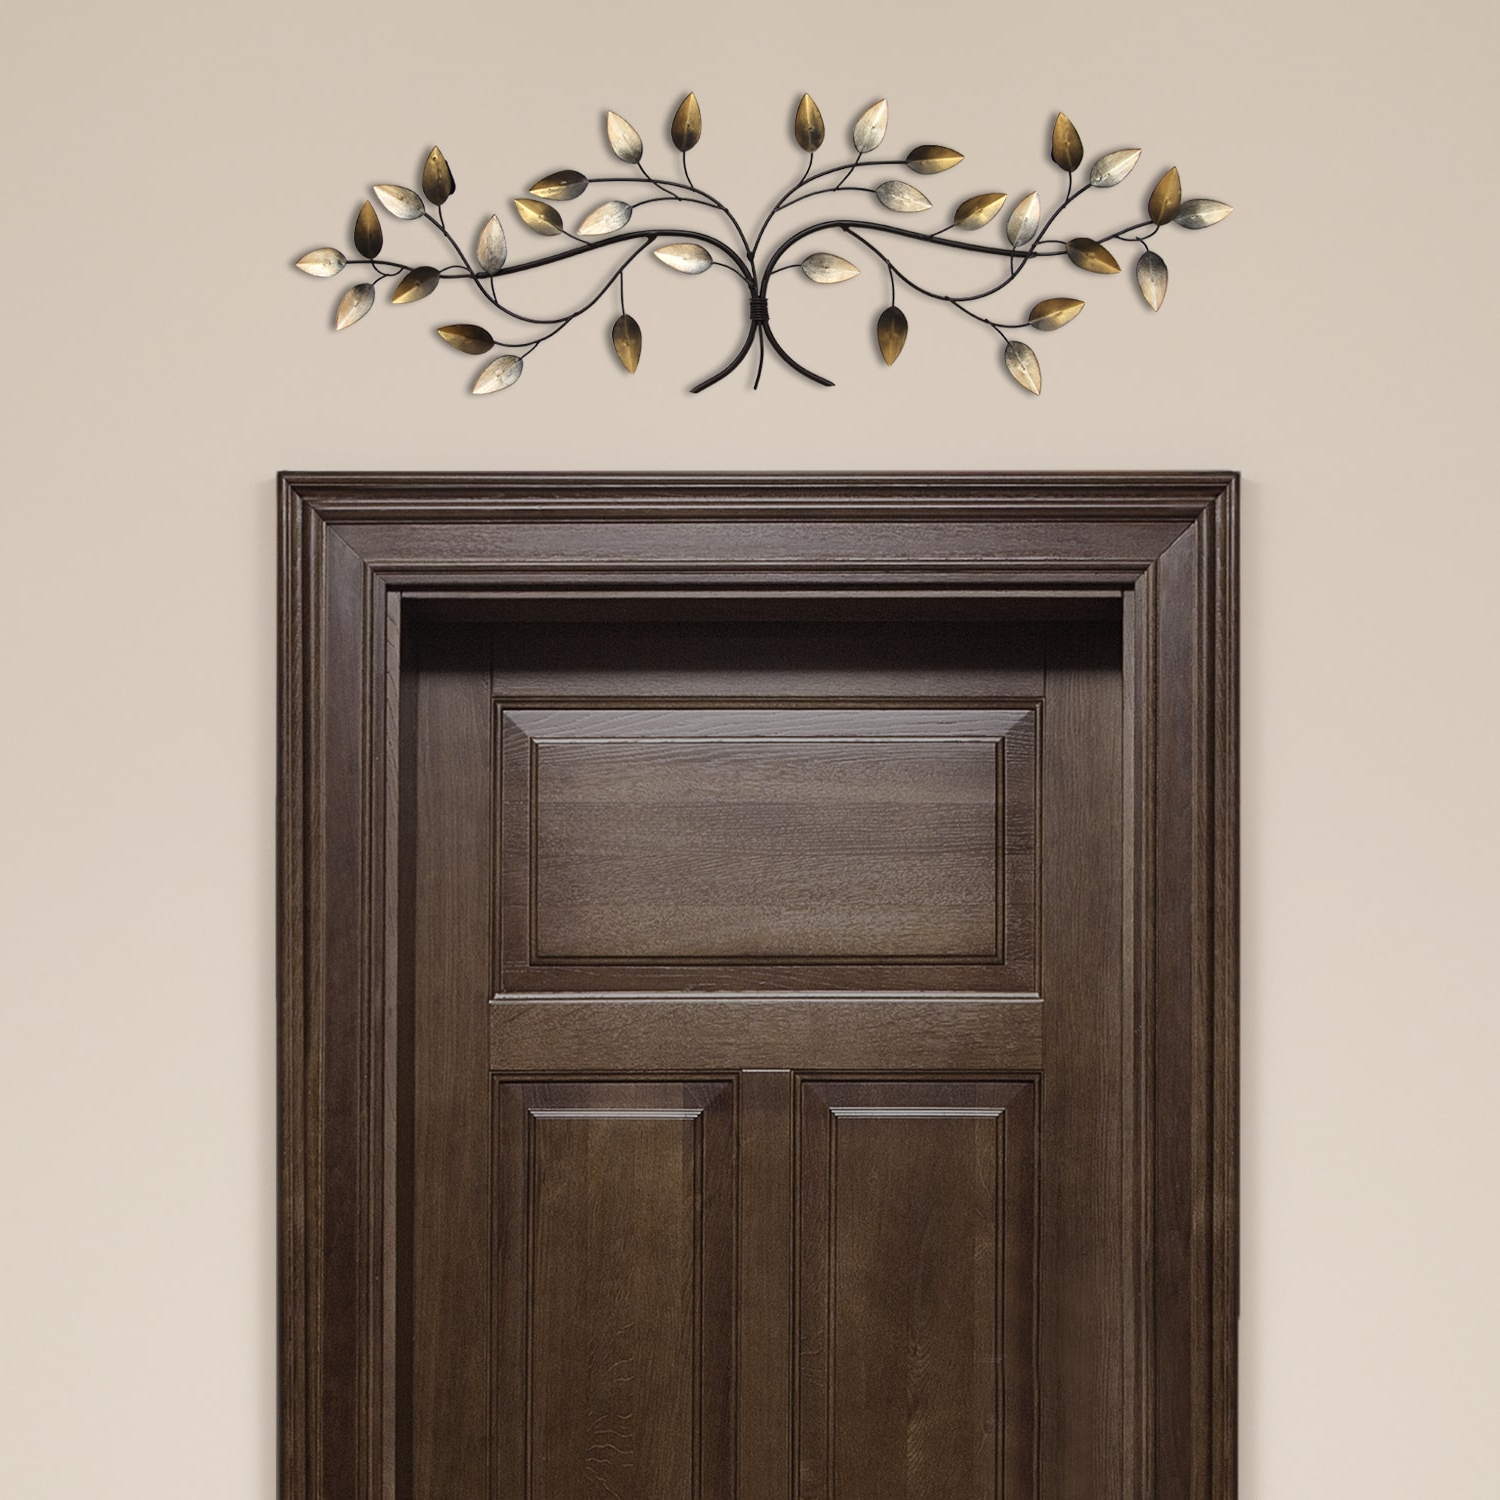 Famous Blowing Leaves Wall Décor For Stratton Home Decor Multicolored Metal 'blowing Leaves' Wall Decor (View 13 of 20)